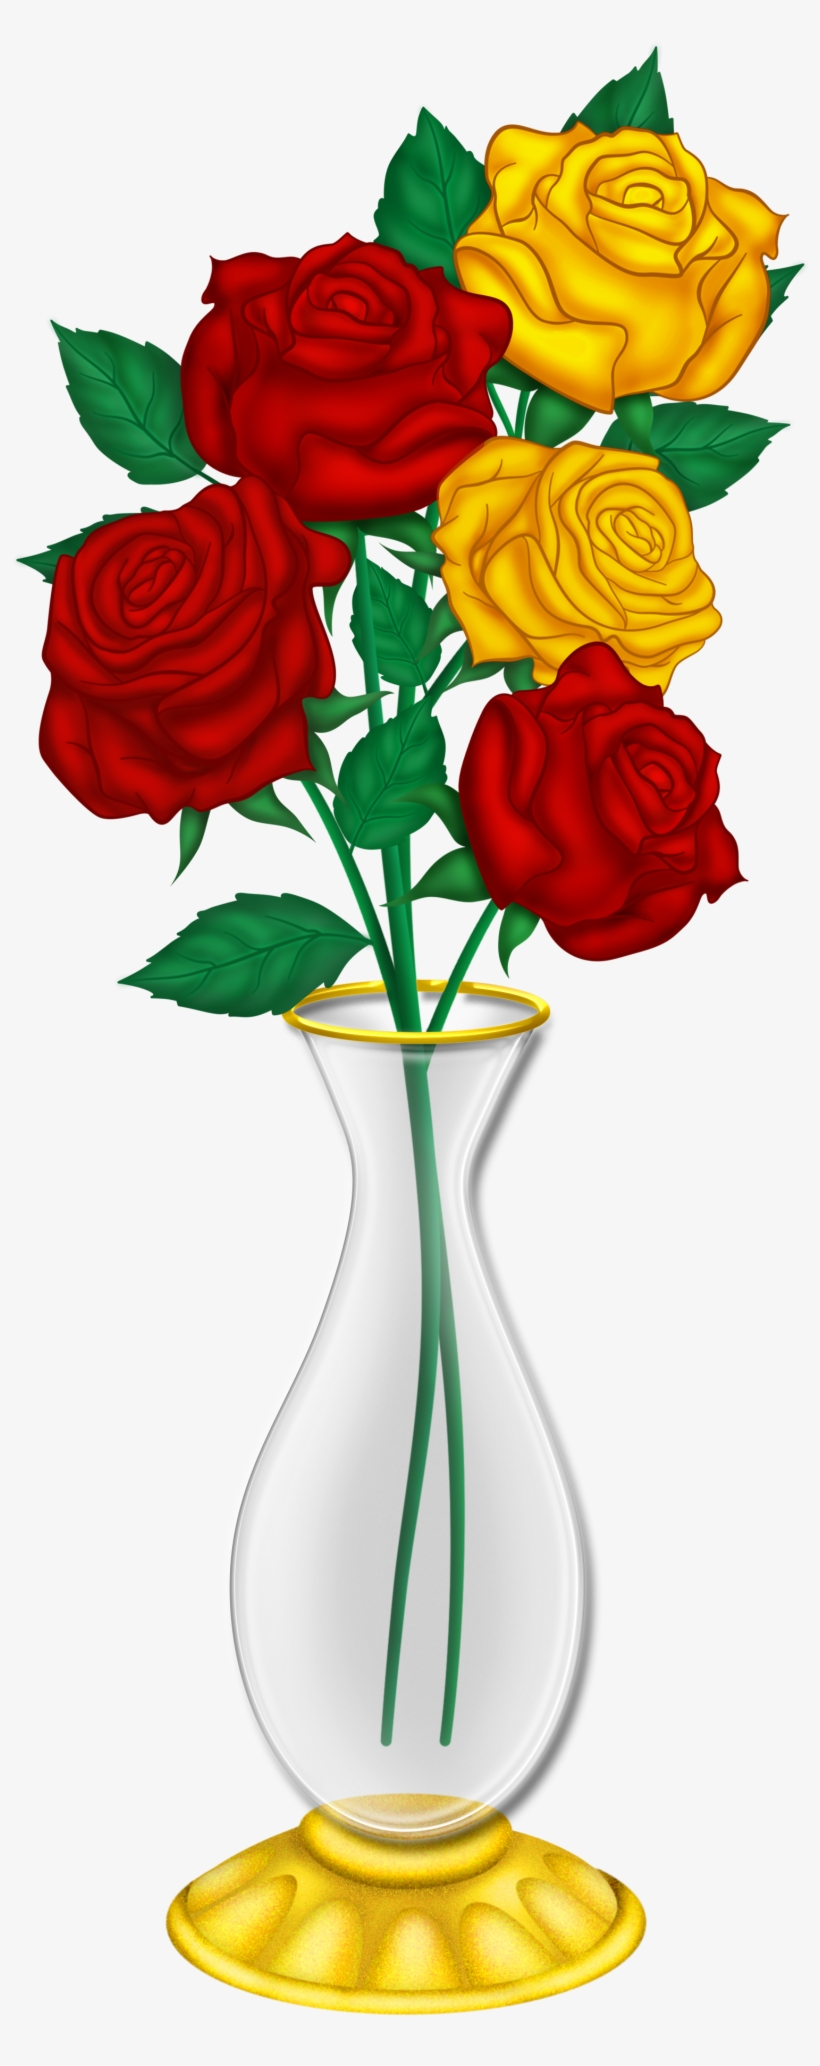 Vase Clipart At Getdrawings.